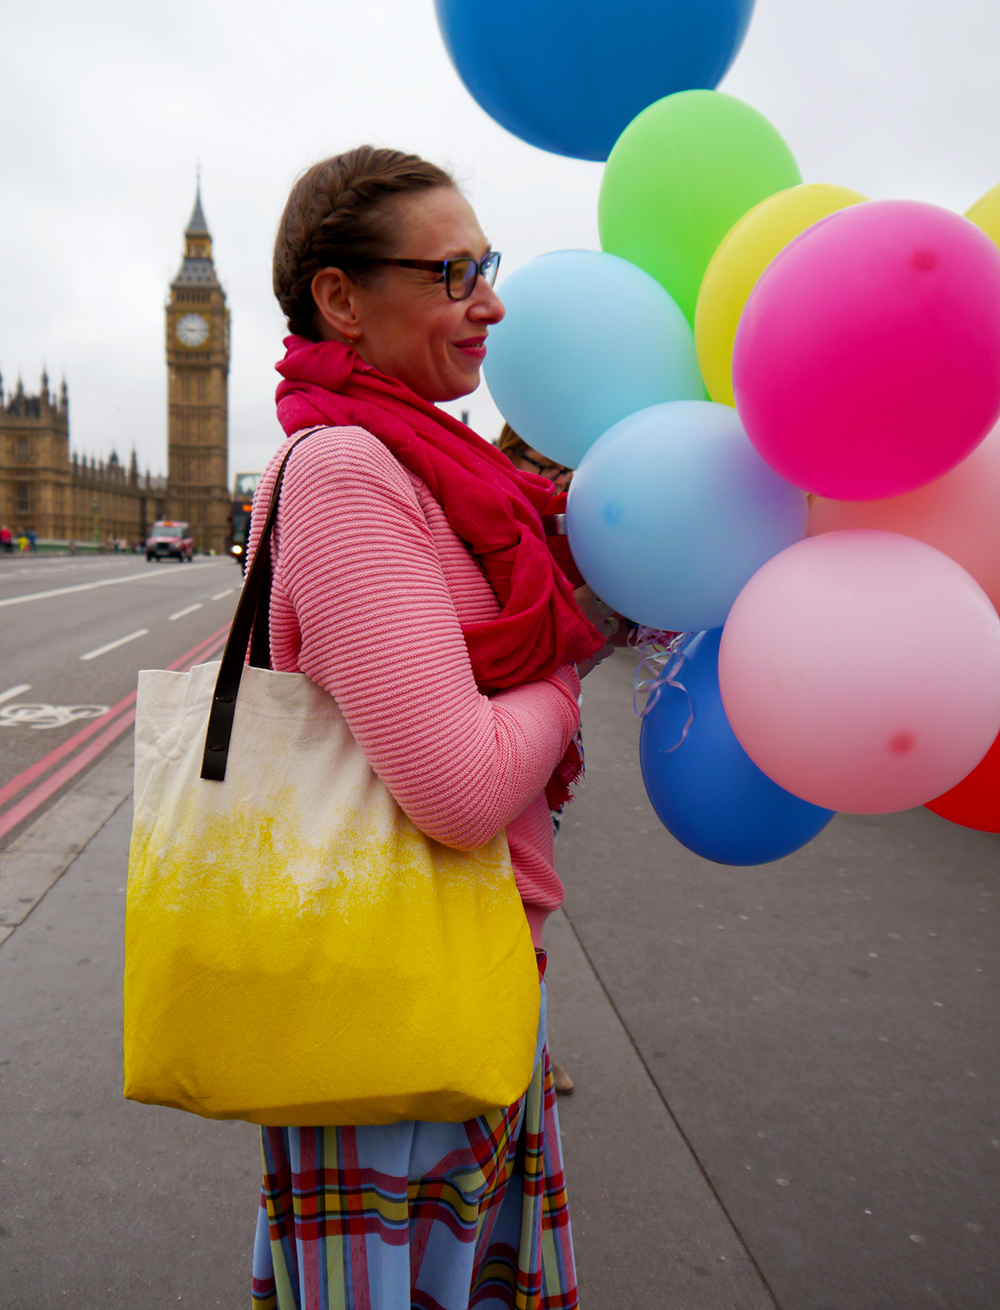 Blogtacualr, photowalk, West Elm Photowalk, London, london style, blogger style, colour, balloons, bloggers, #blogtacular, #westelmlondonscenes, West Elm London Scenes, Big Ben